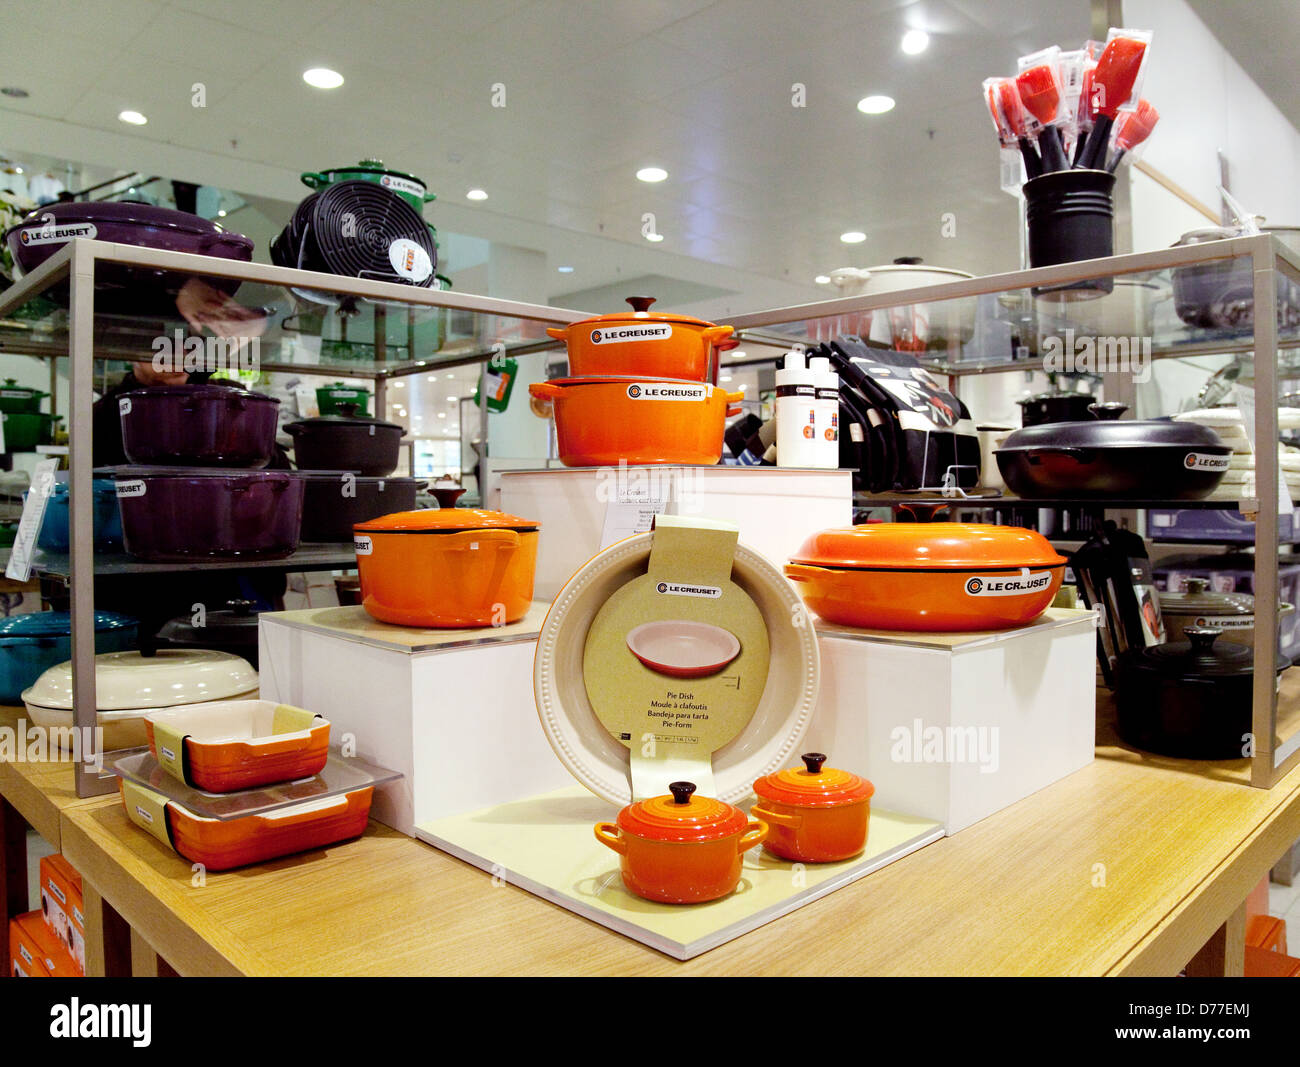 le creuset kitchenware for sale in the john lewis store. Black Bedroom Furniture Sets. Home Design Ideas